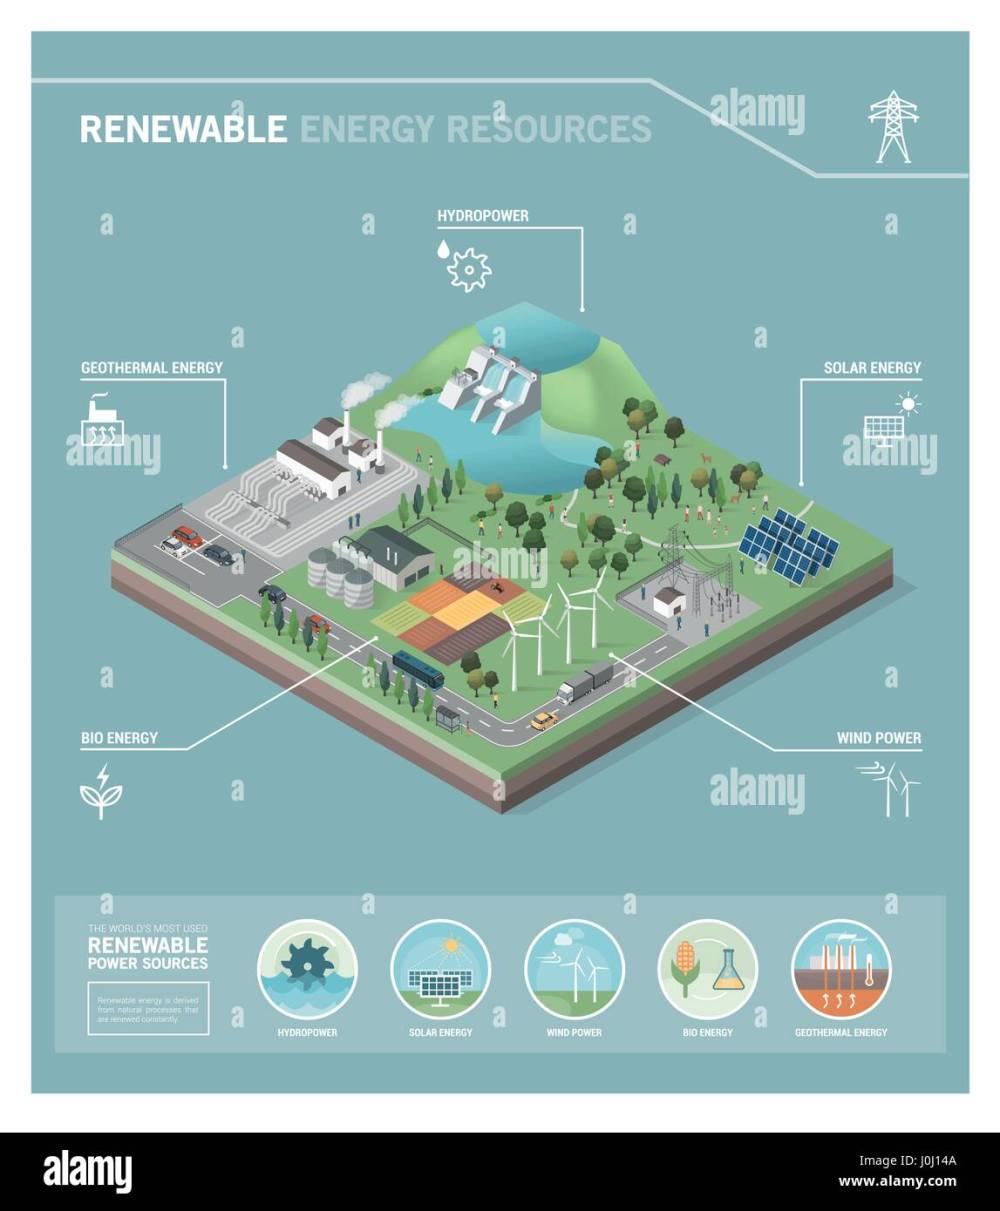 medium resolution of green power production and renewable energy resources hydropower geothermal power bio energy